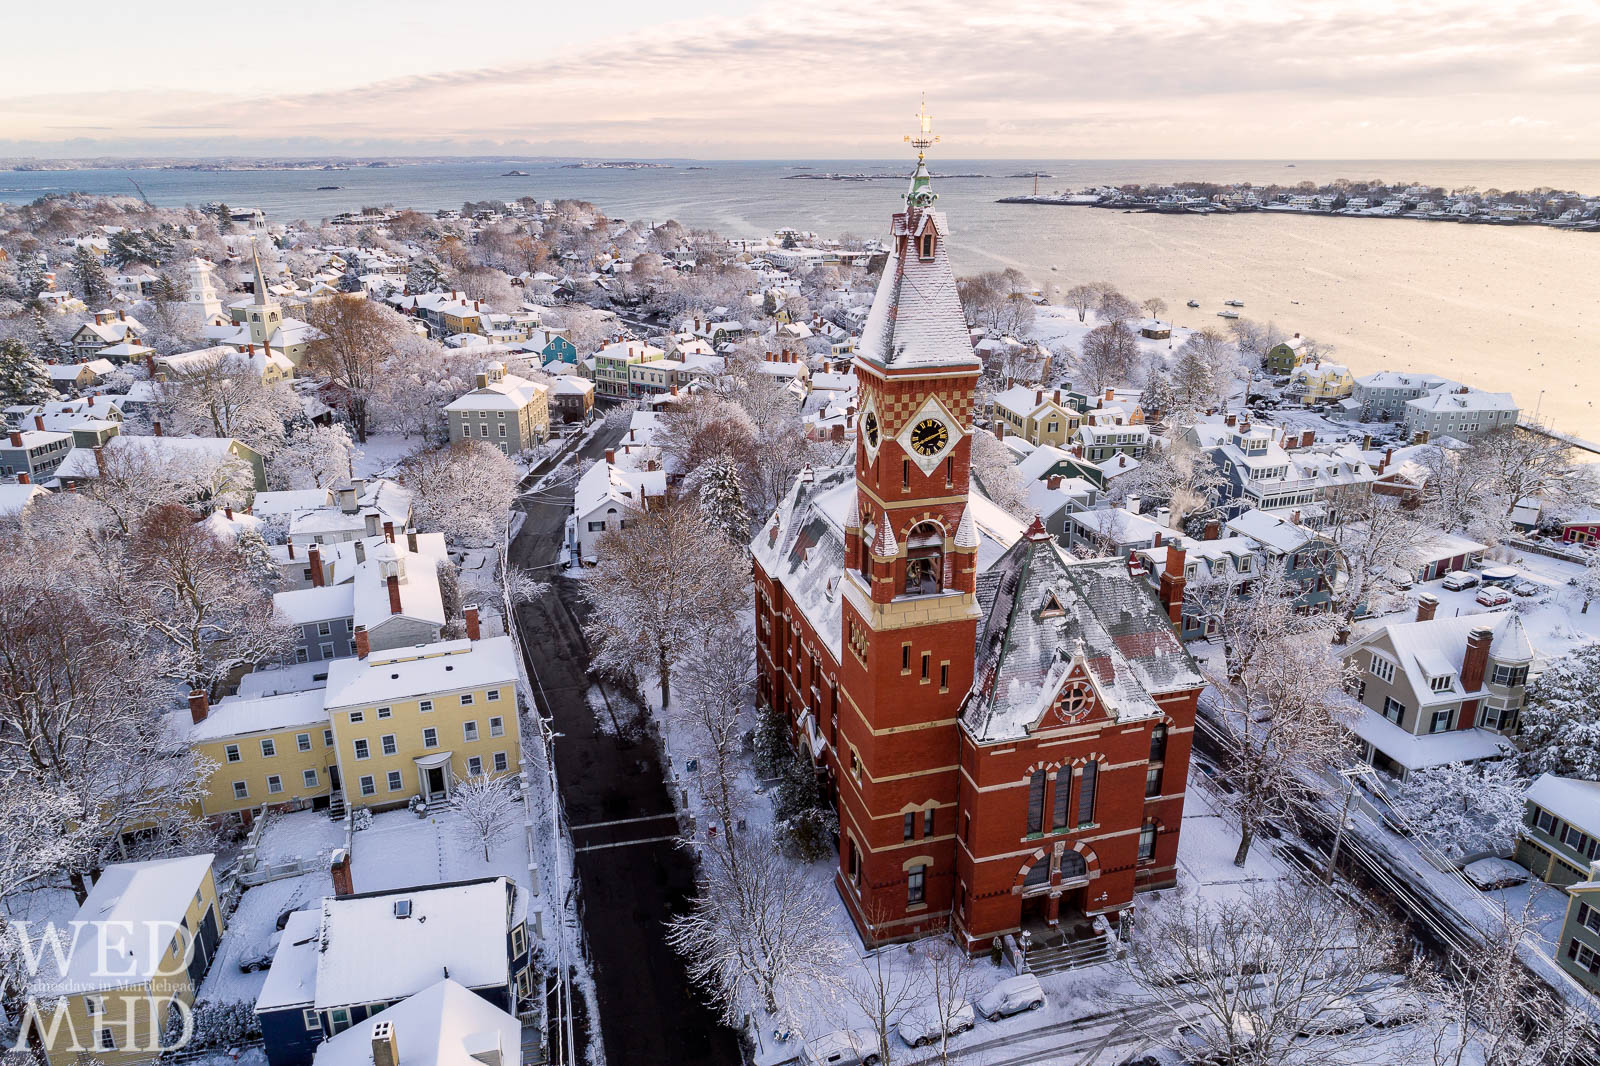 Abbot Hall is painted in white as Marblehead lies under a blanket of freshly fallen snow. There's something magical about the first snow of the season.